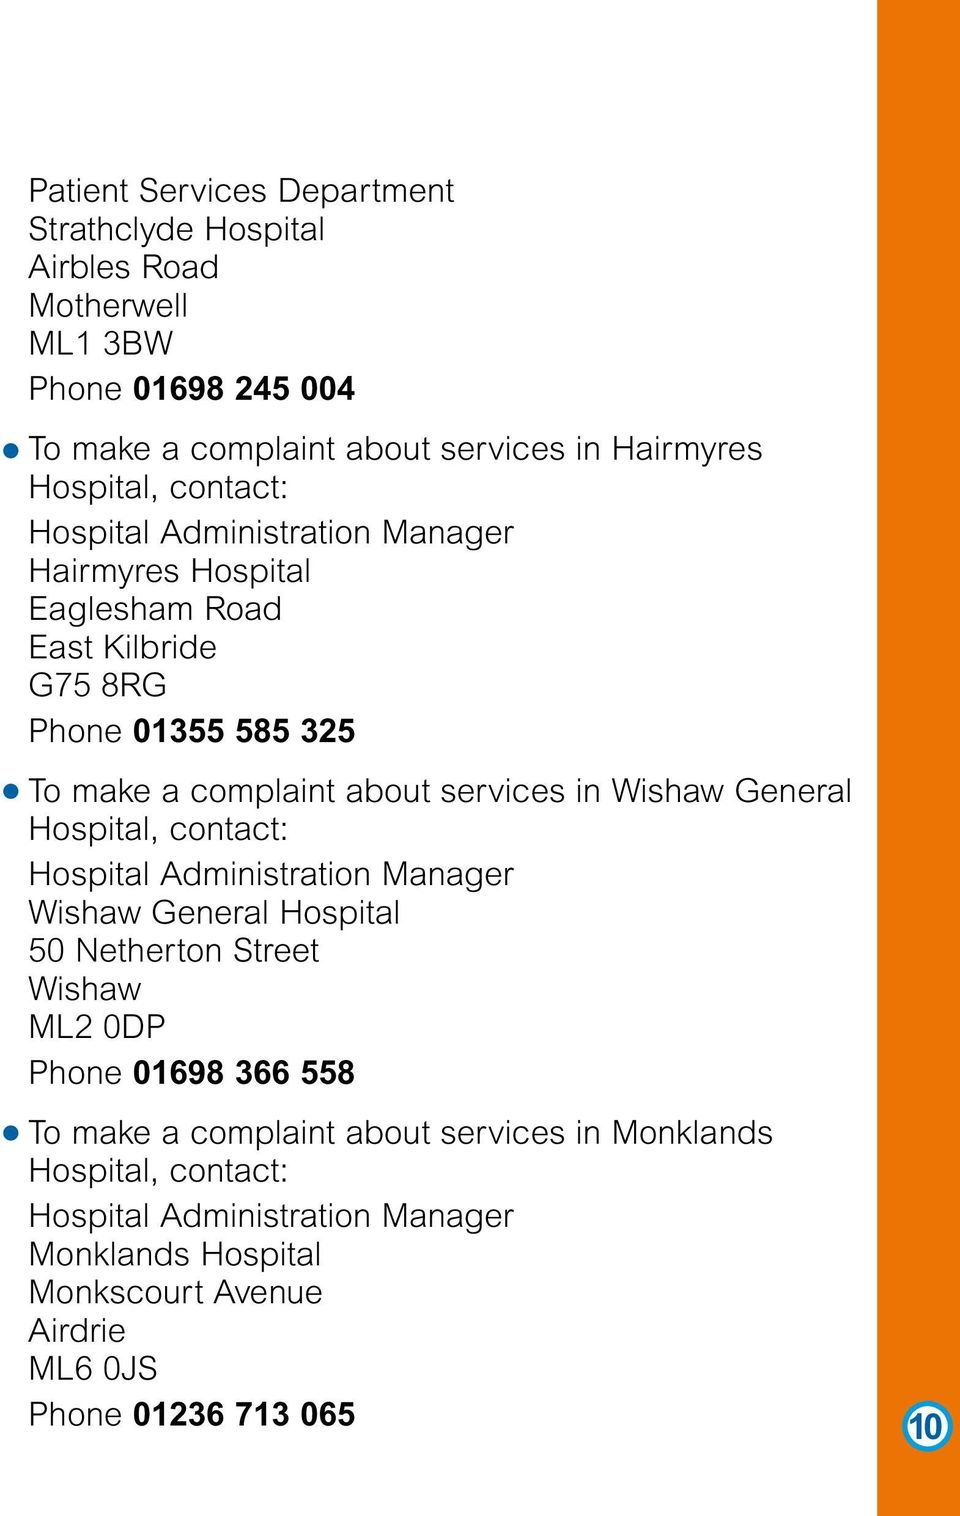 Wishaw General Hospital, contact: Hospital Administration Manager Wishaw General Hospital 50 Netherton Street Wishaw ML2 0DP Phone 01698 366 558 To make a